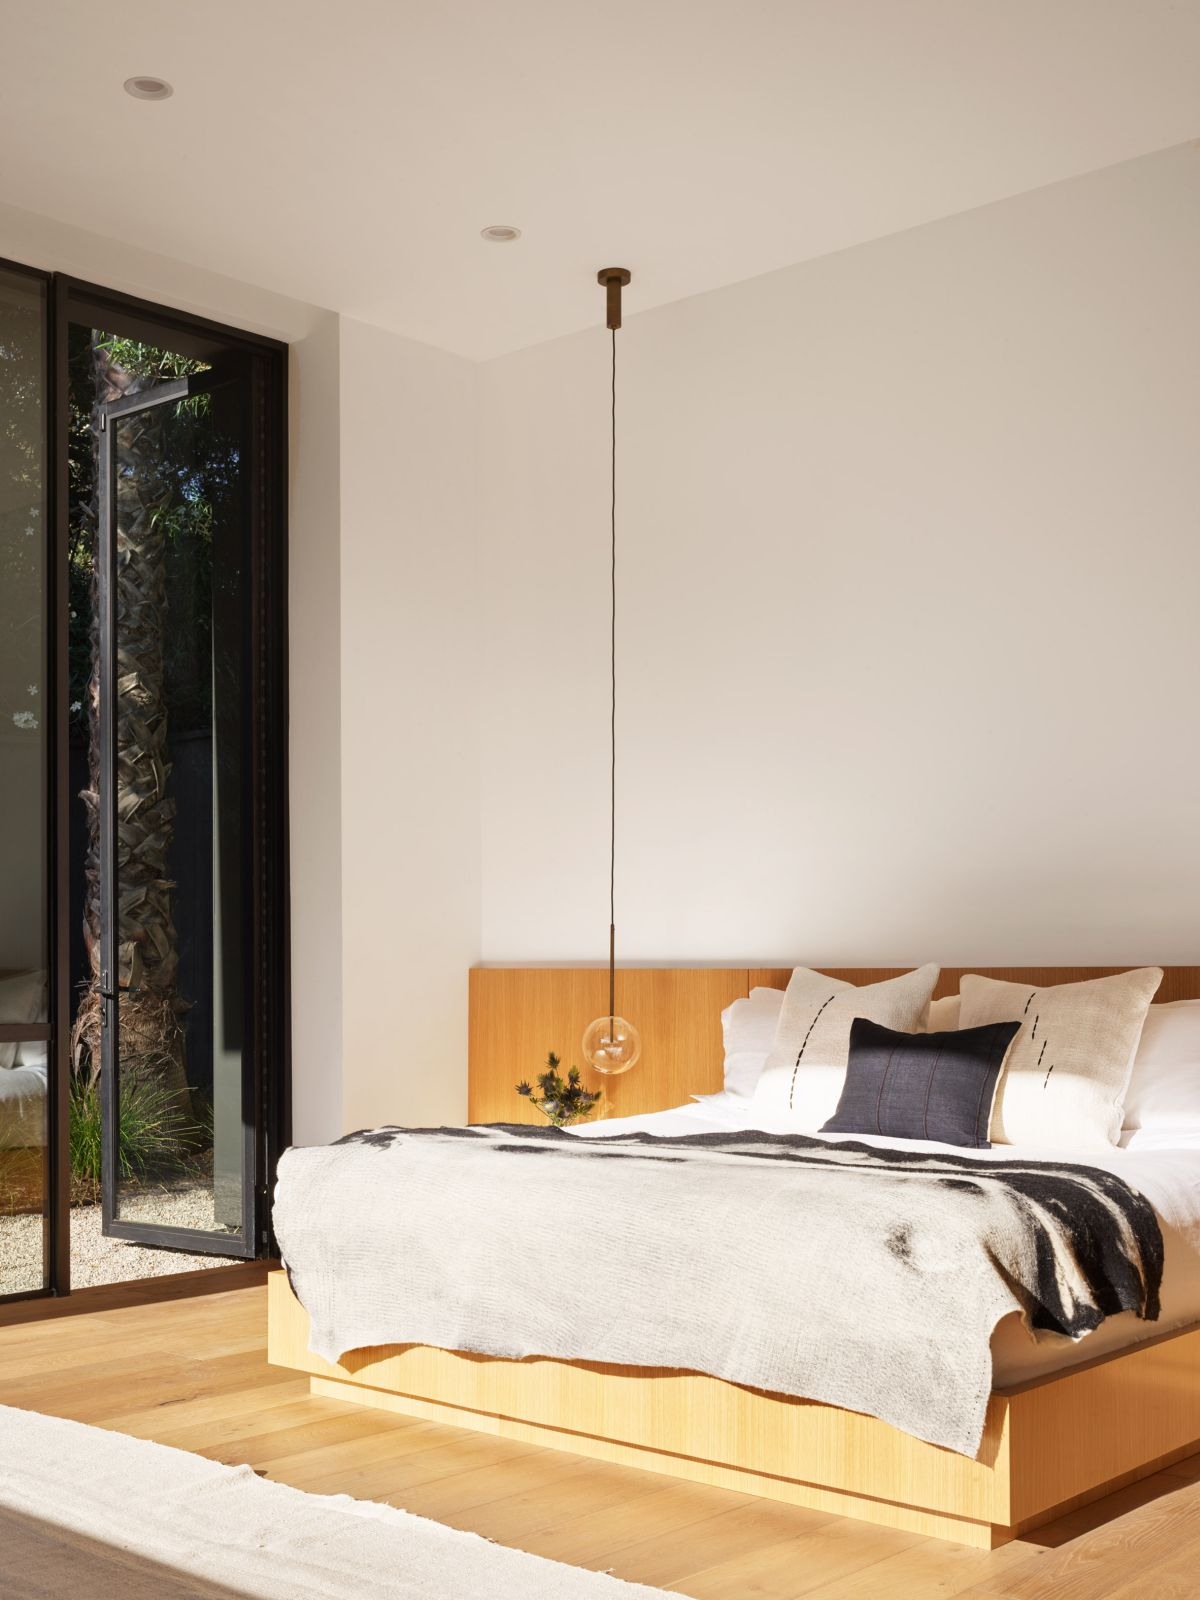 The master bedroom is placed at the far end of the volume and has its own private outdoor area